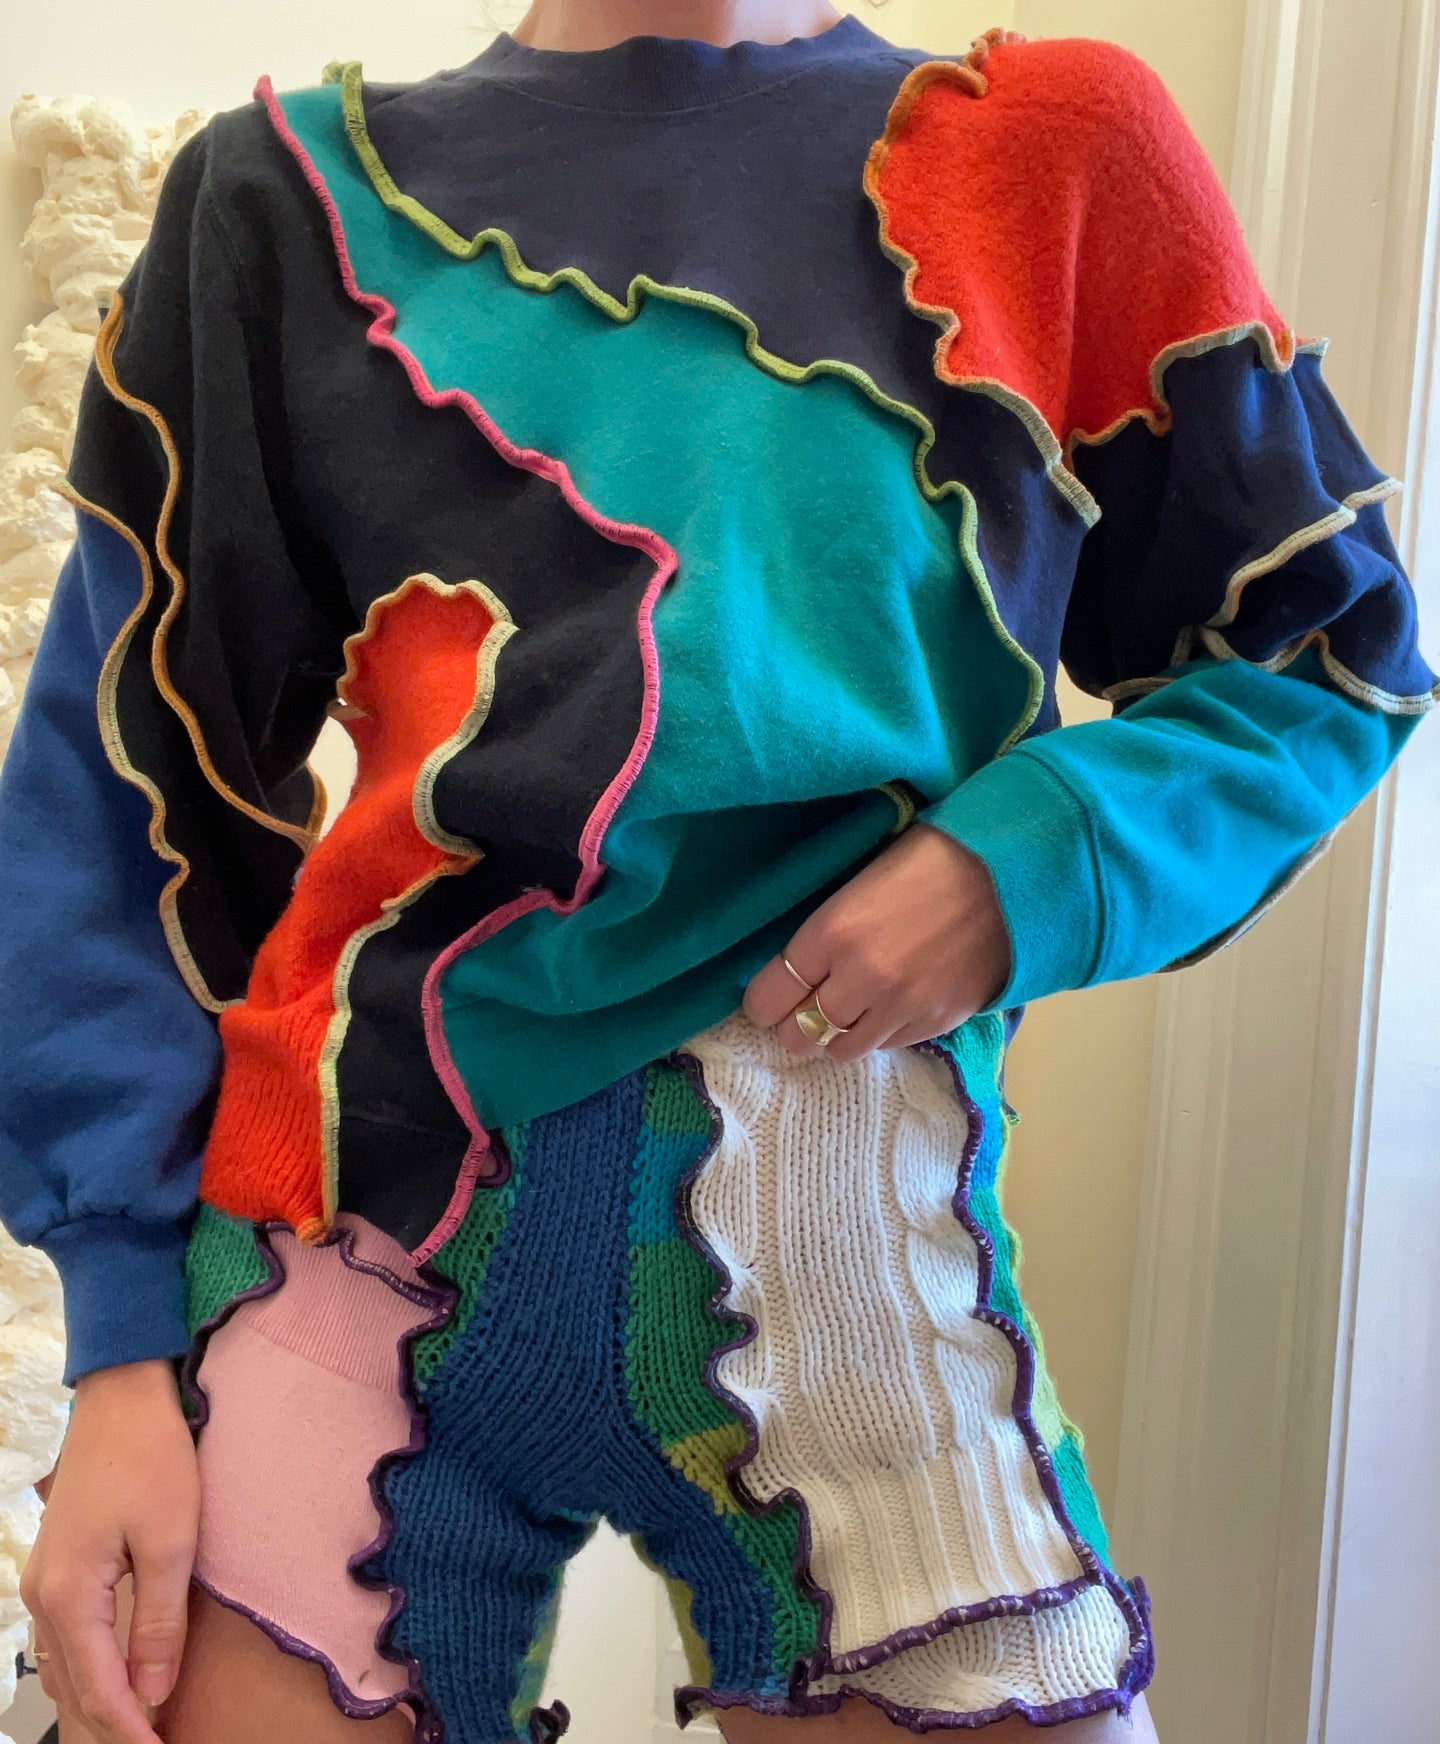 MIXED TEXTURE PATCHWORK SWEATSHIRT